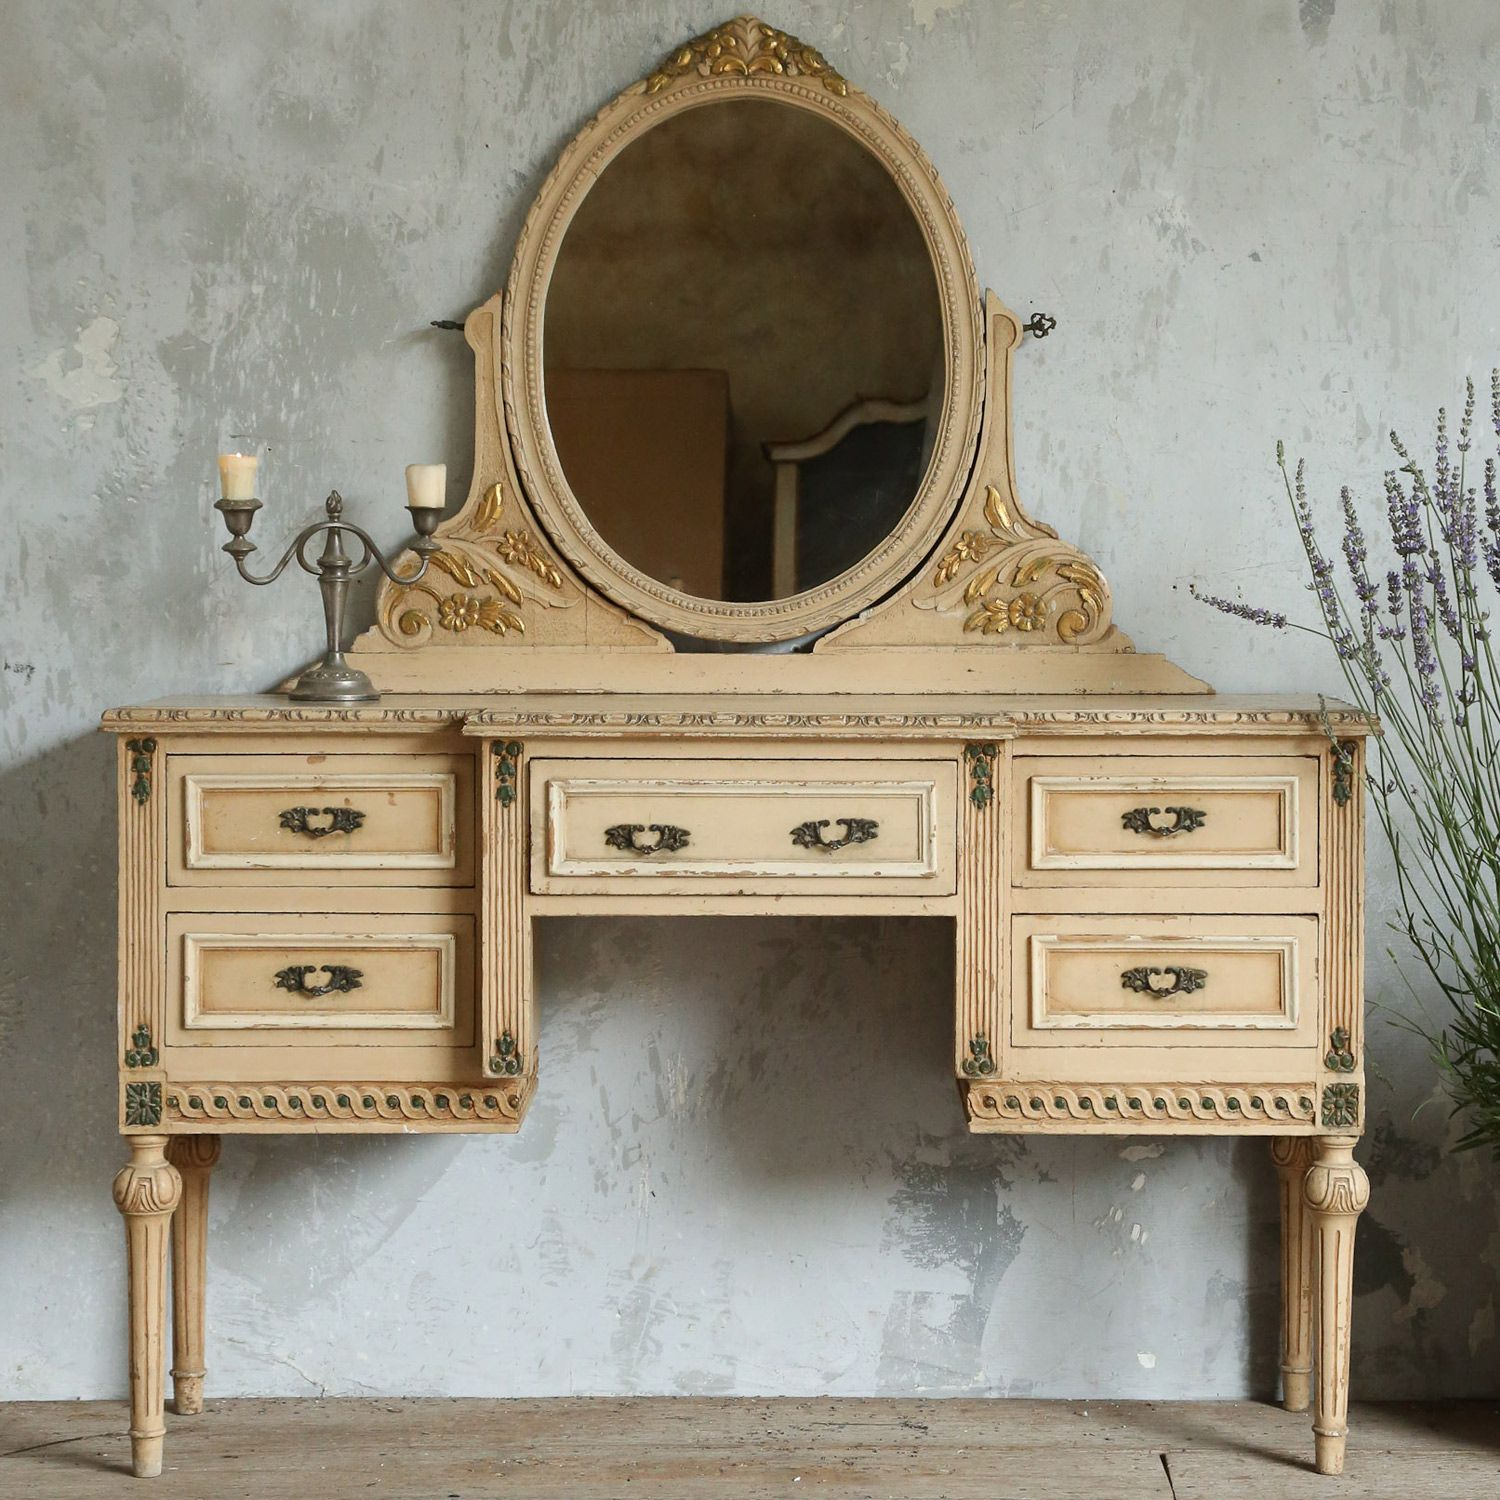 For the right price so me pinterest vintage vanity peach